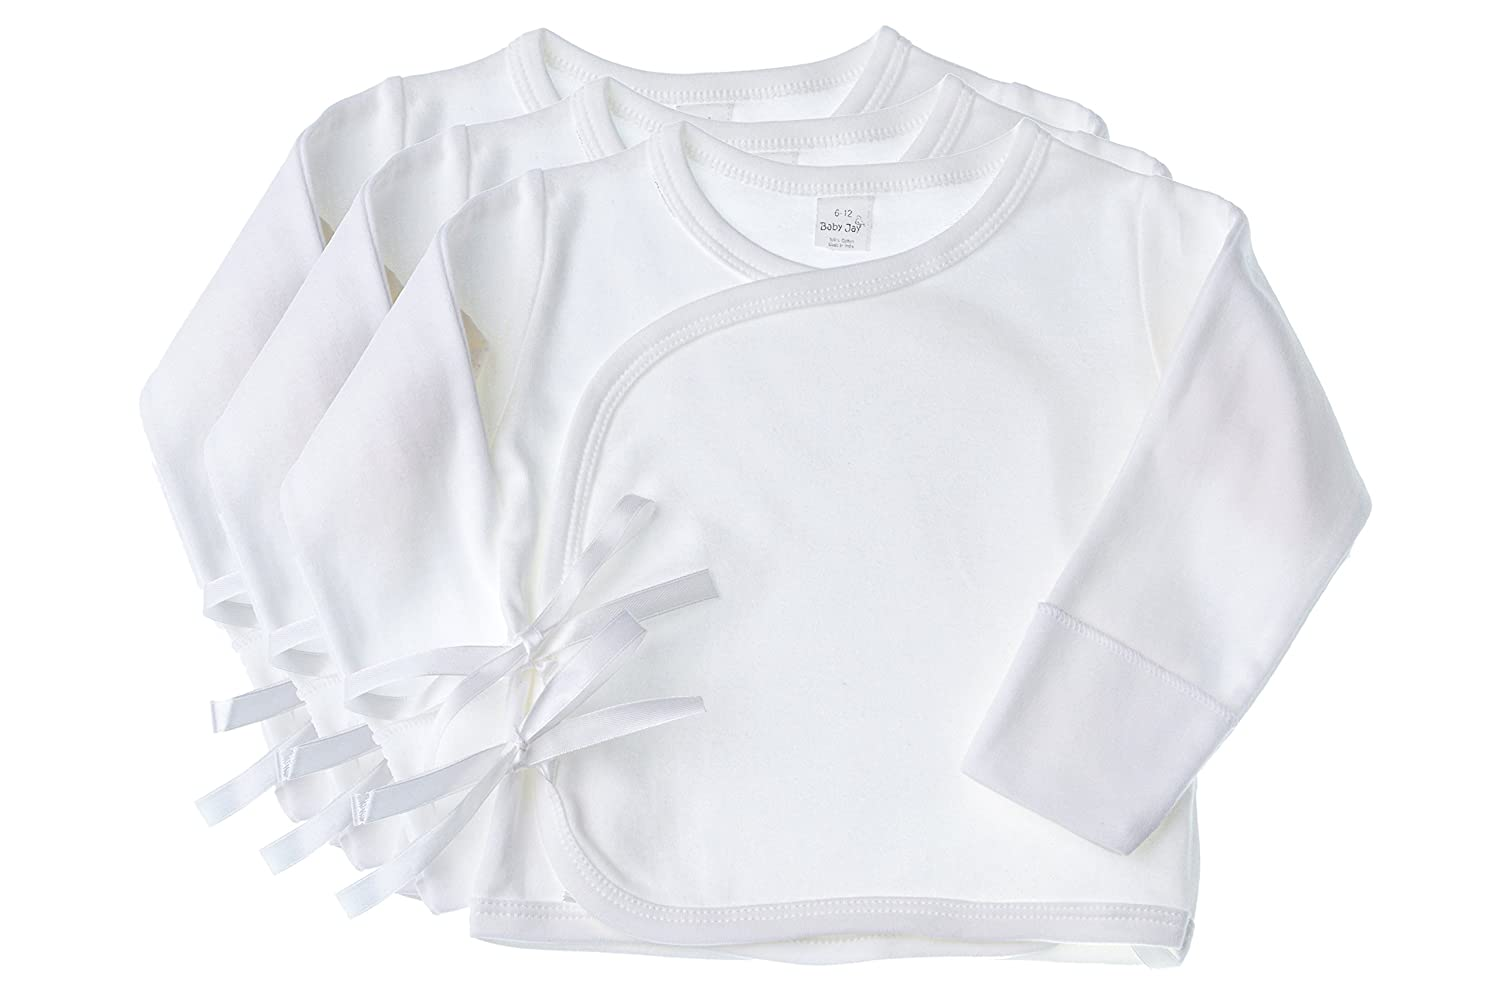 Baby Jay 3 Pack Baby Shirt Soft Cotton White Wrap With Satin Ribbon For Infants by